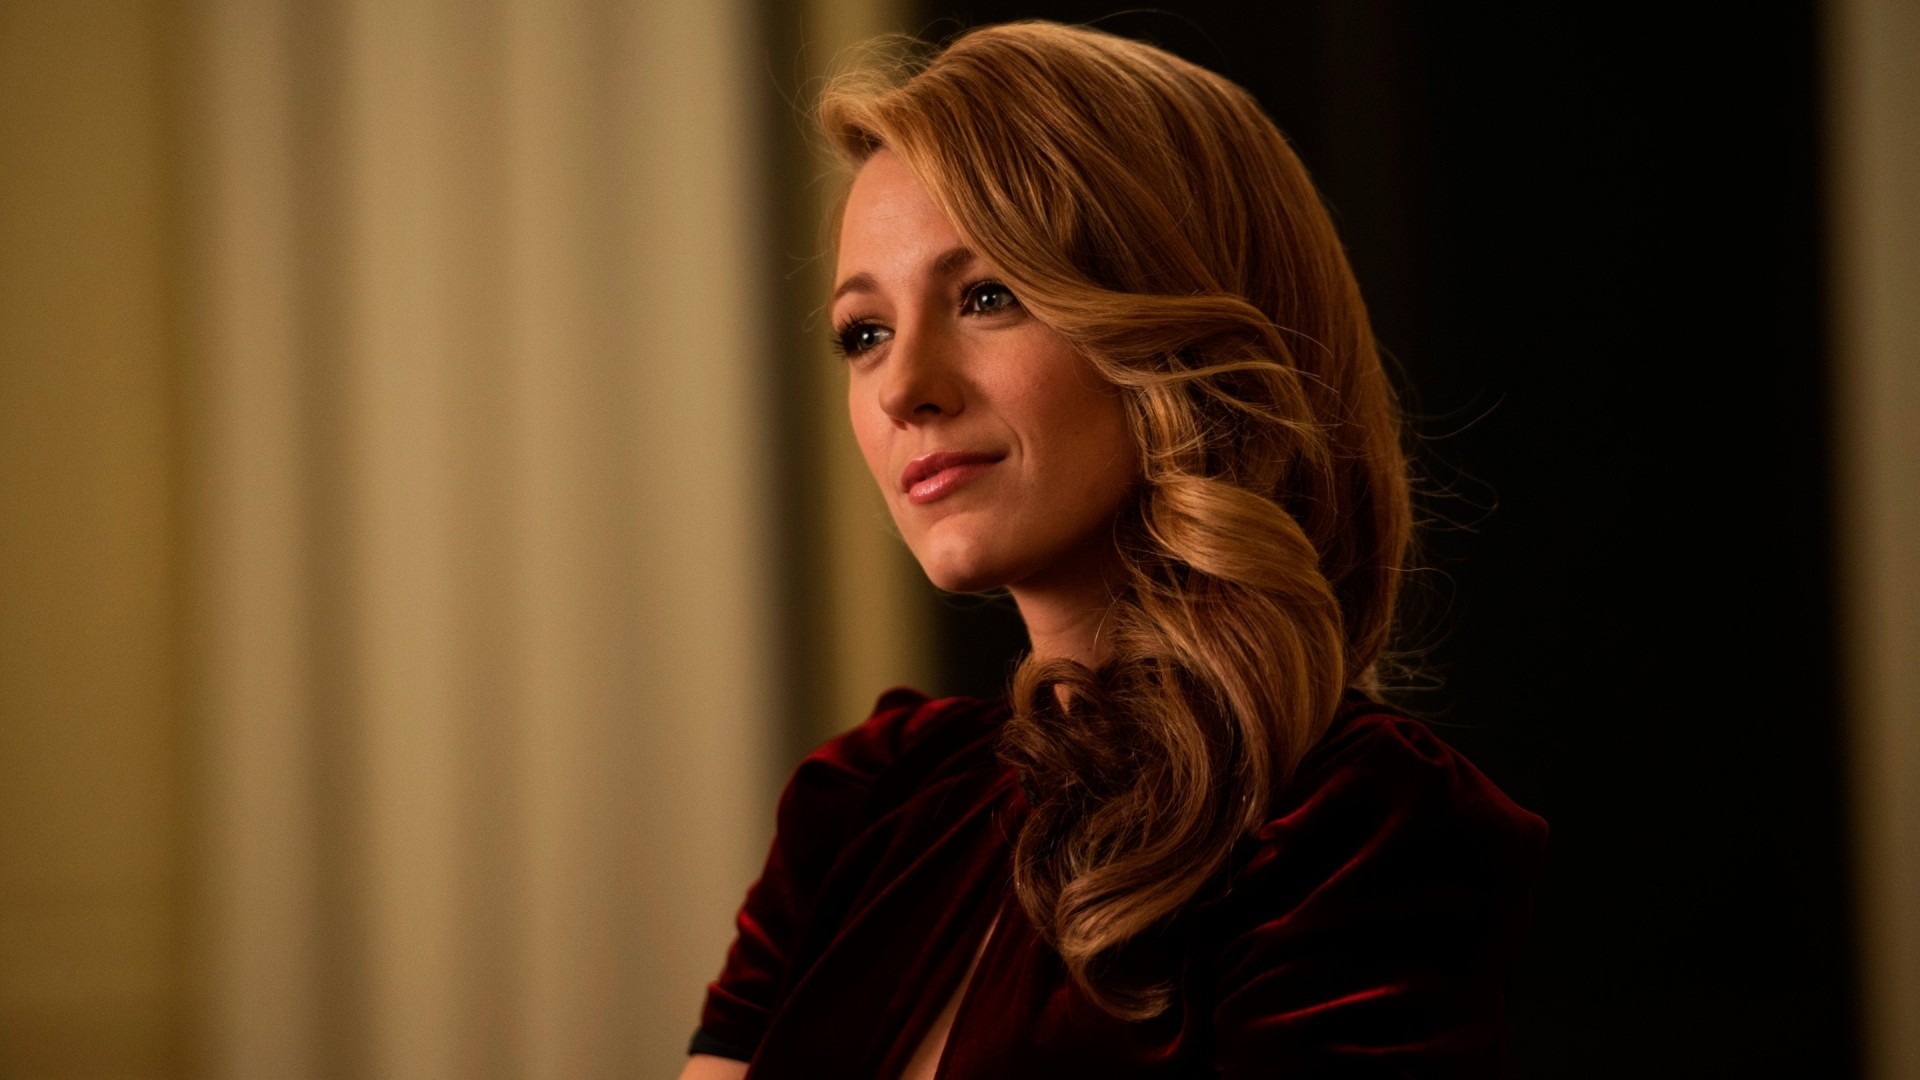 1920x1080 Preview wallpaper the age of adaline, blake lively, adaline bowman